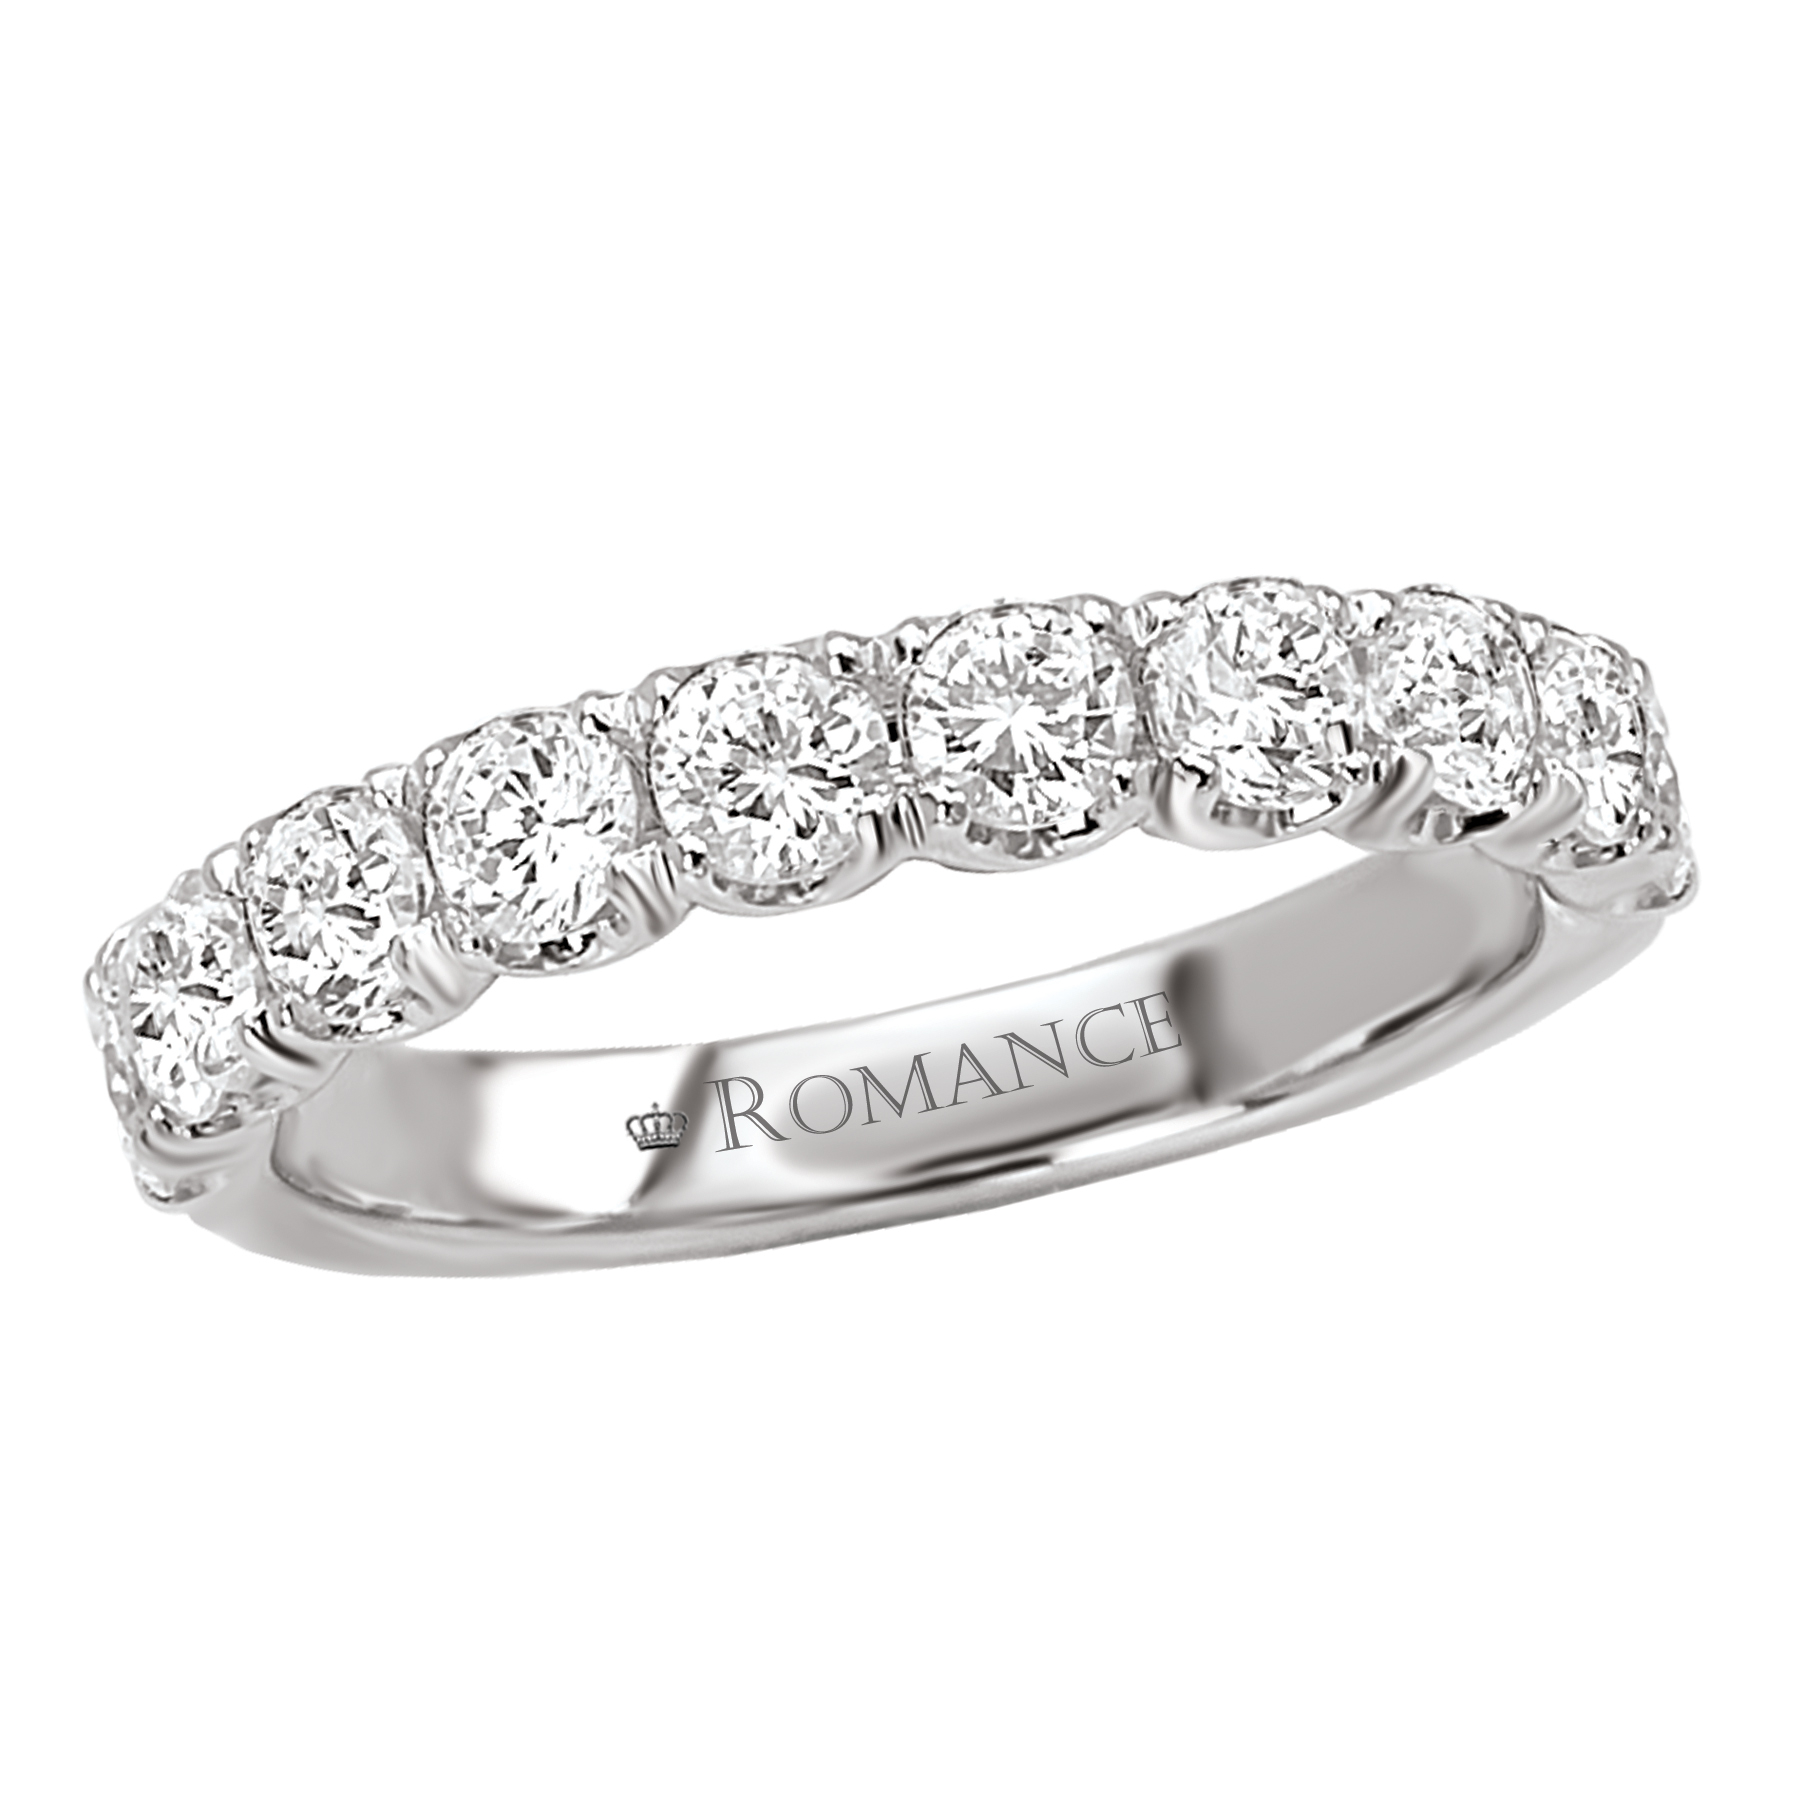 Romance Wedding Bands 117271-W product image